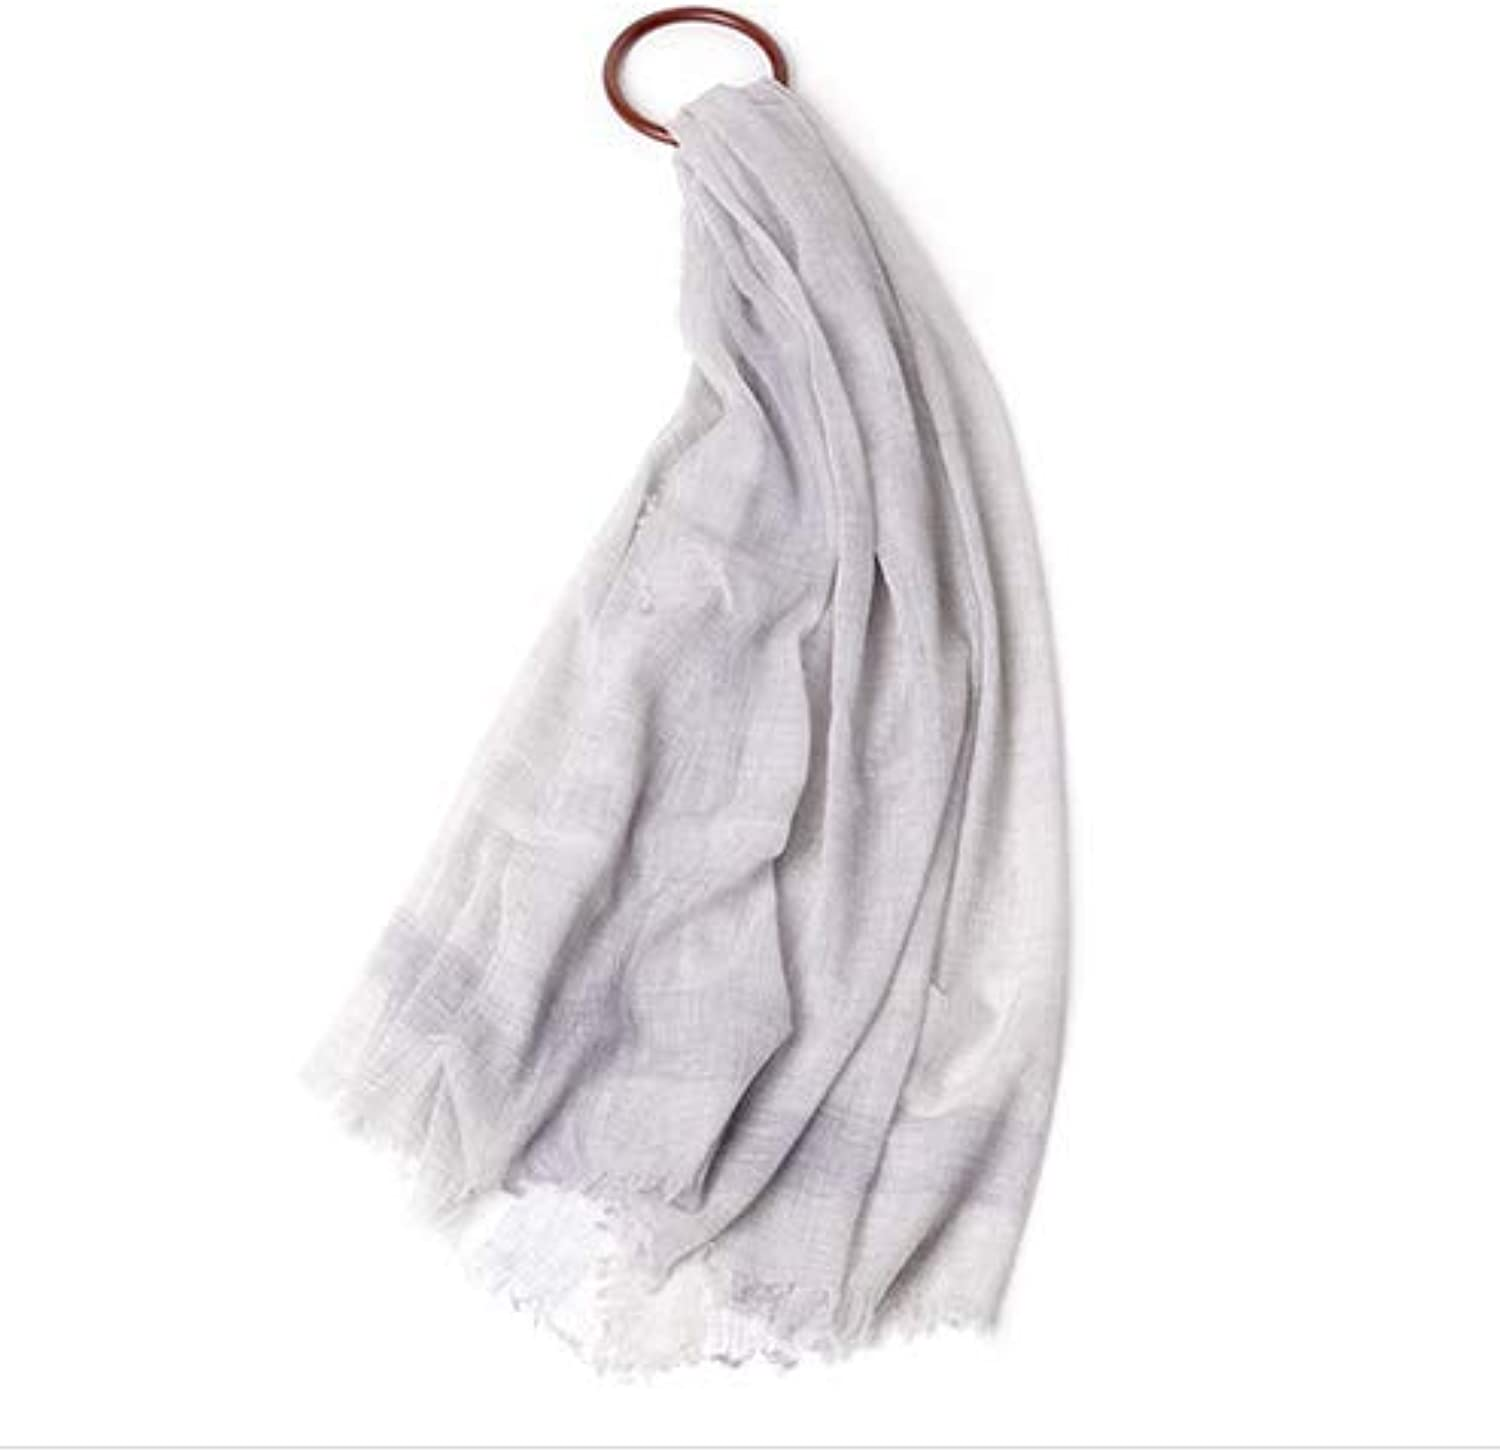 Cashmere Scarf Blanket Soft Cashmere Shawl wrap Winter Wool Scarf Shawl and Ladies Scarf, A,M